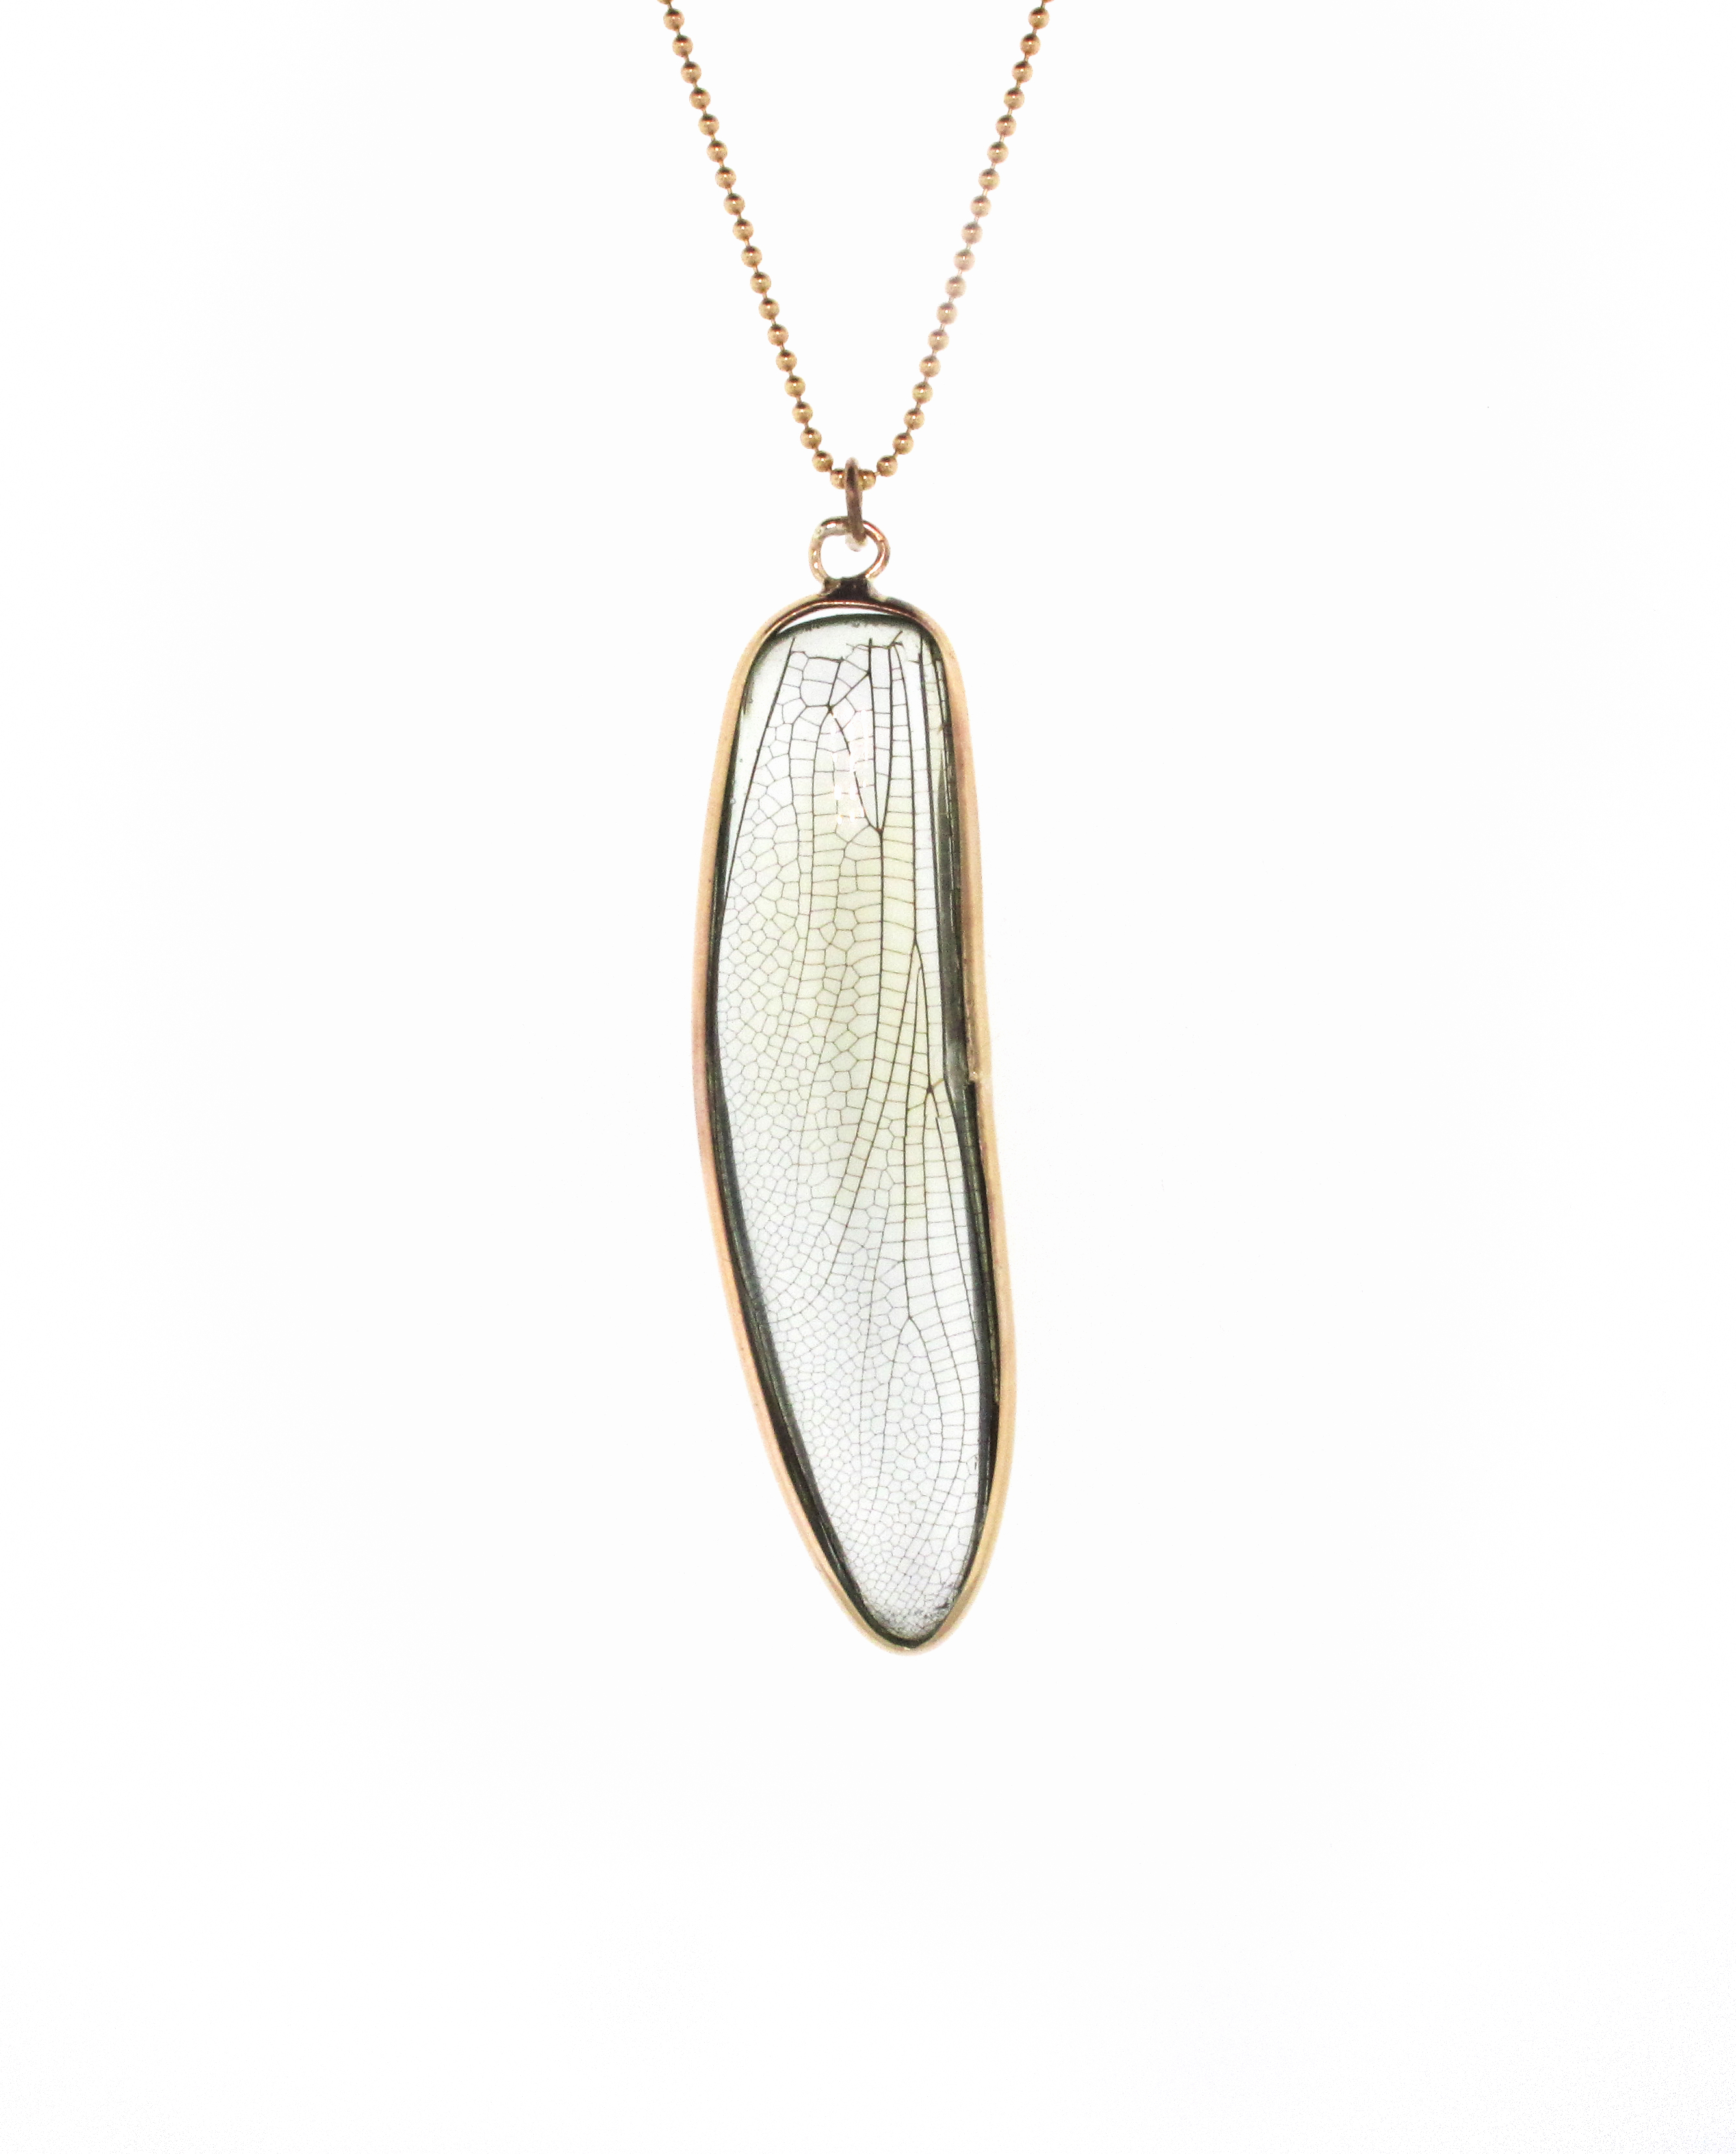 Dragonfly Wing Pendant | Blue Morpho Jewelry